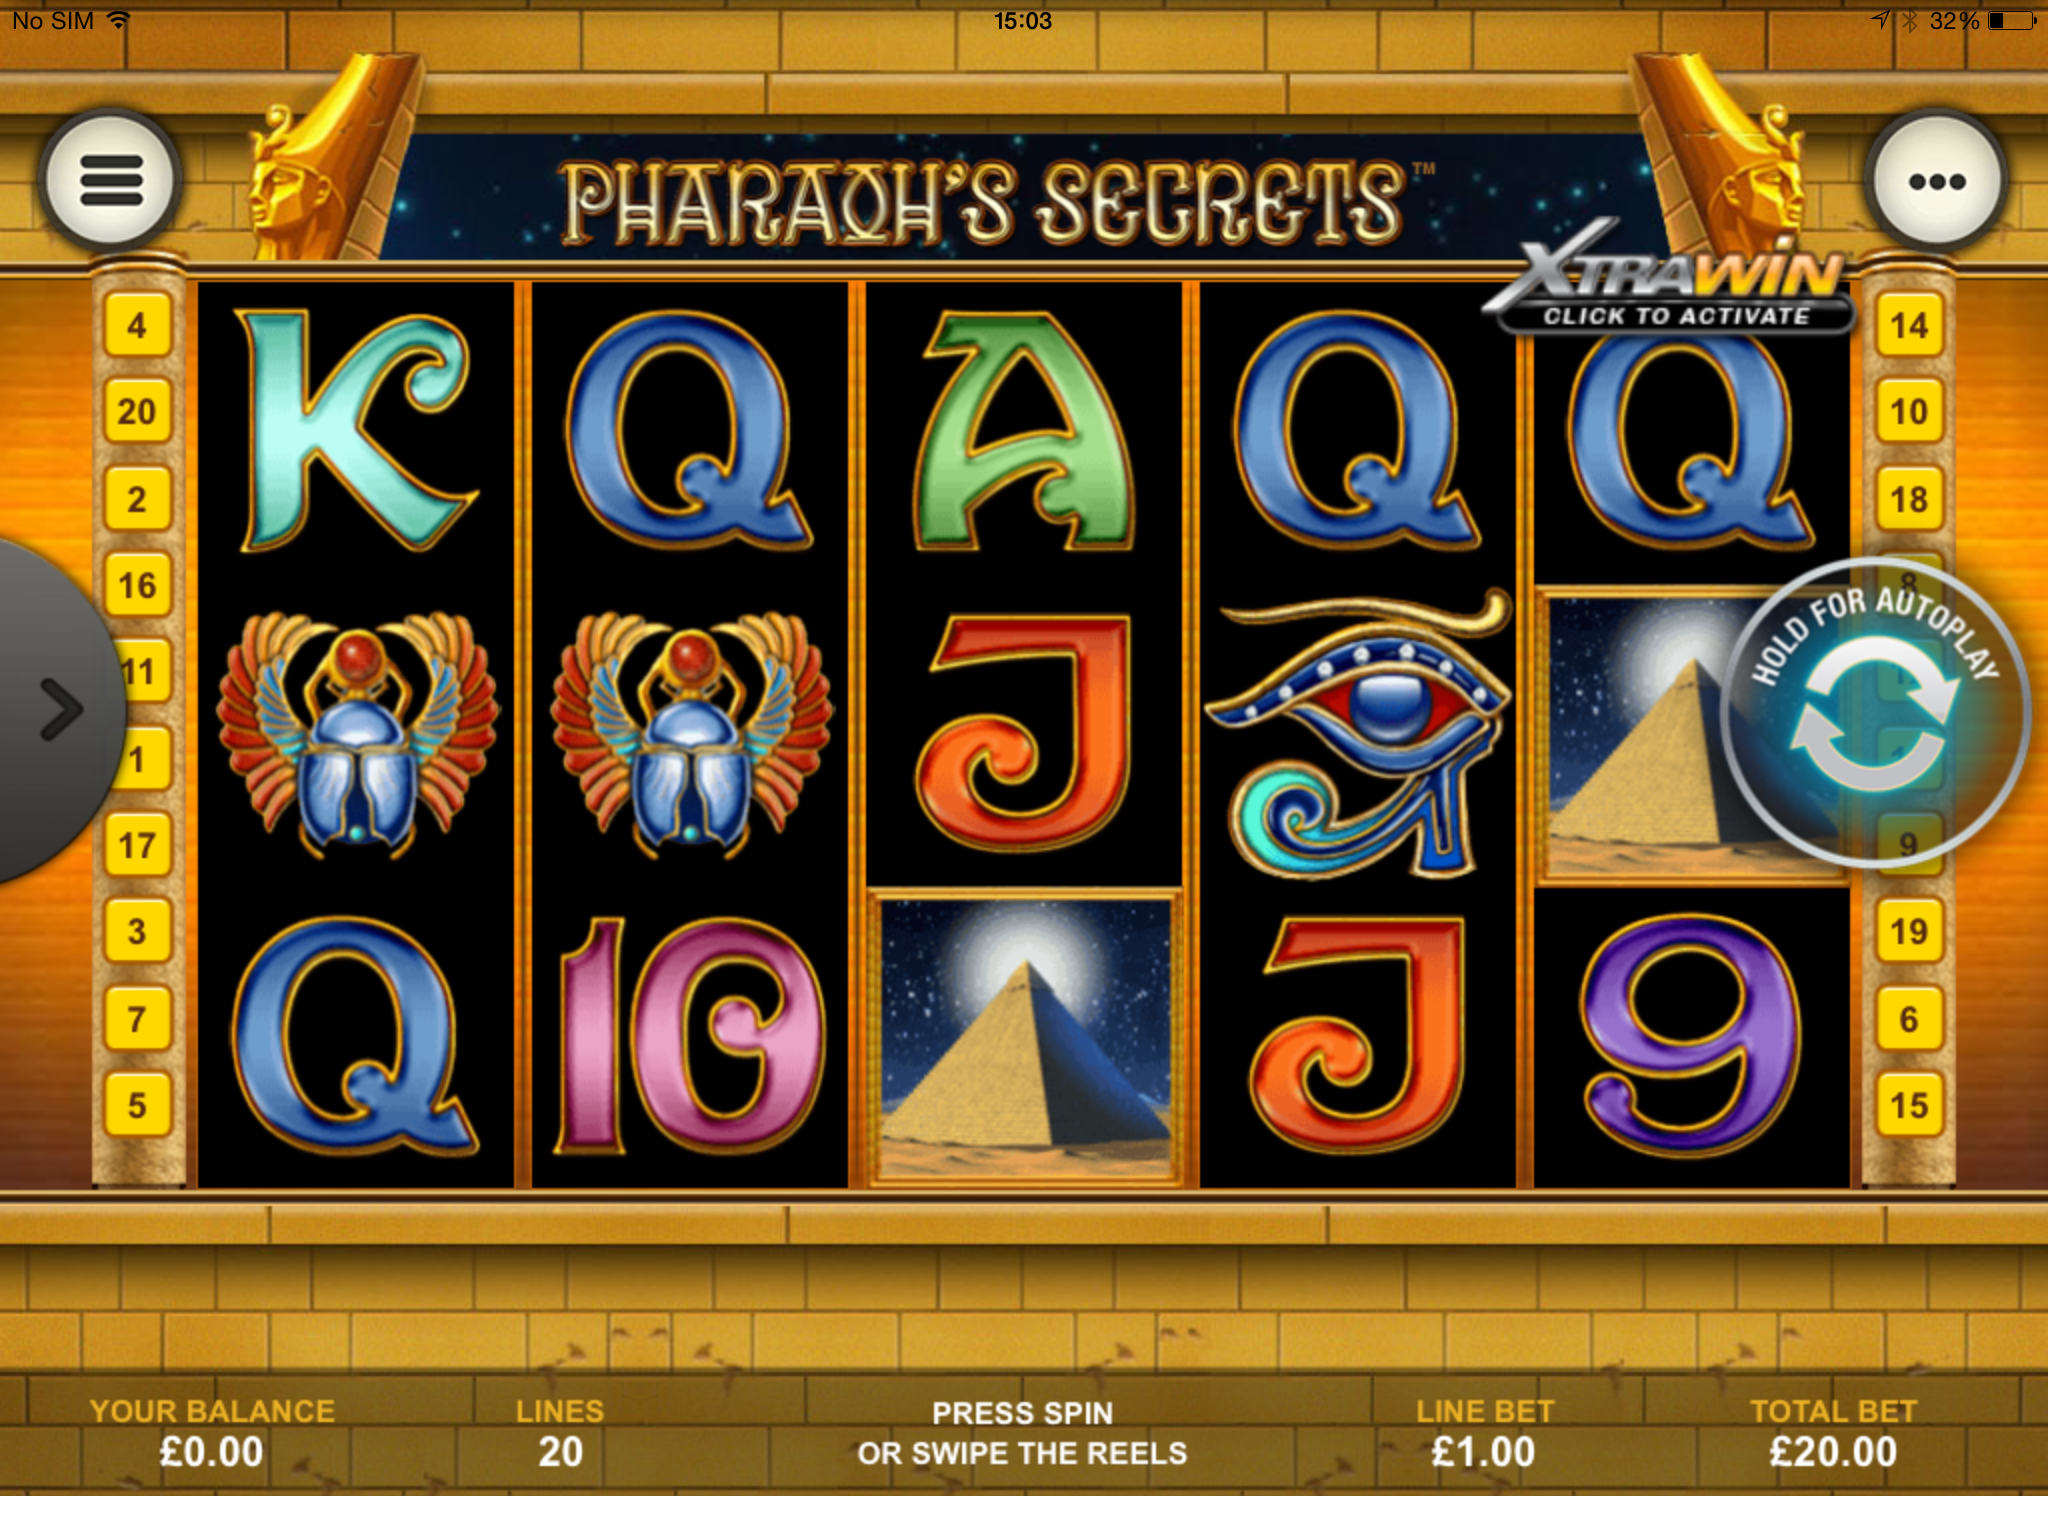 Play Pharaohs Secrets Slots Online at Casino.com NZ